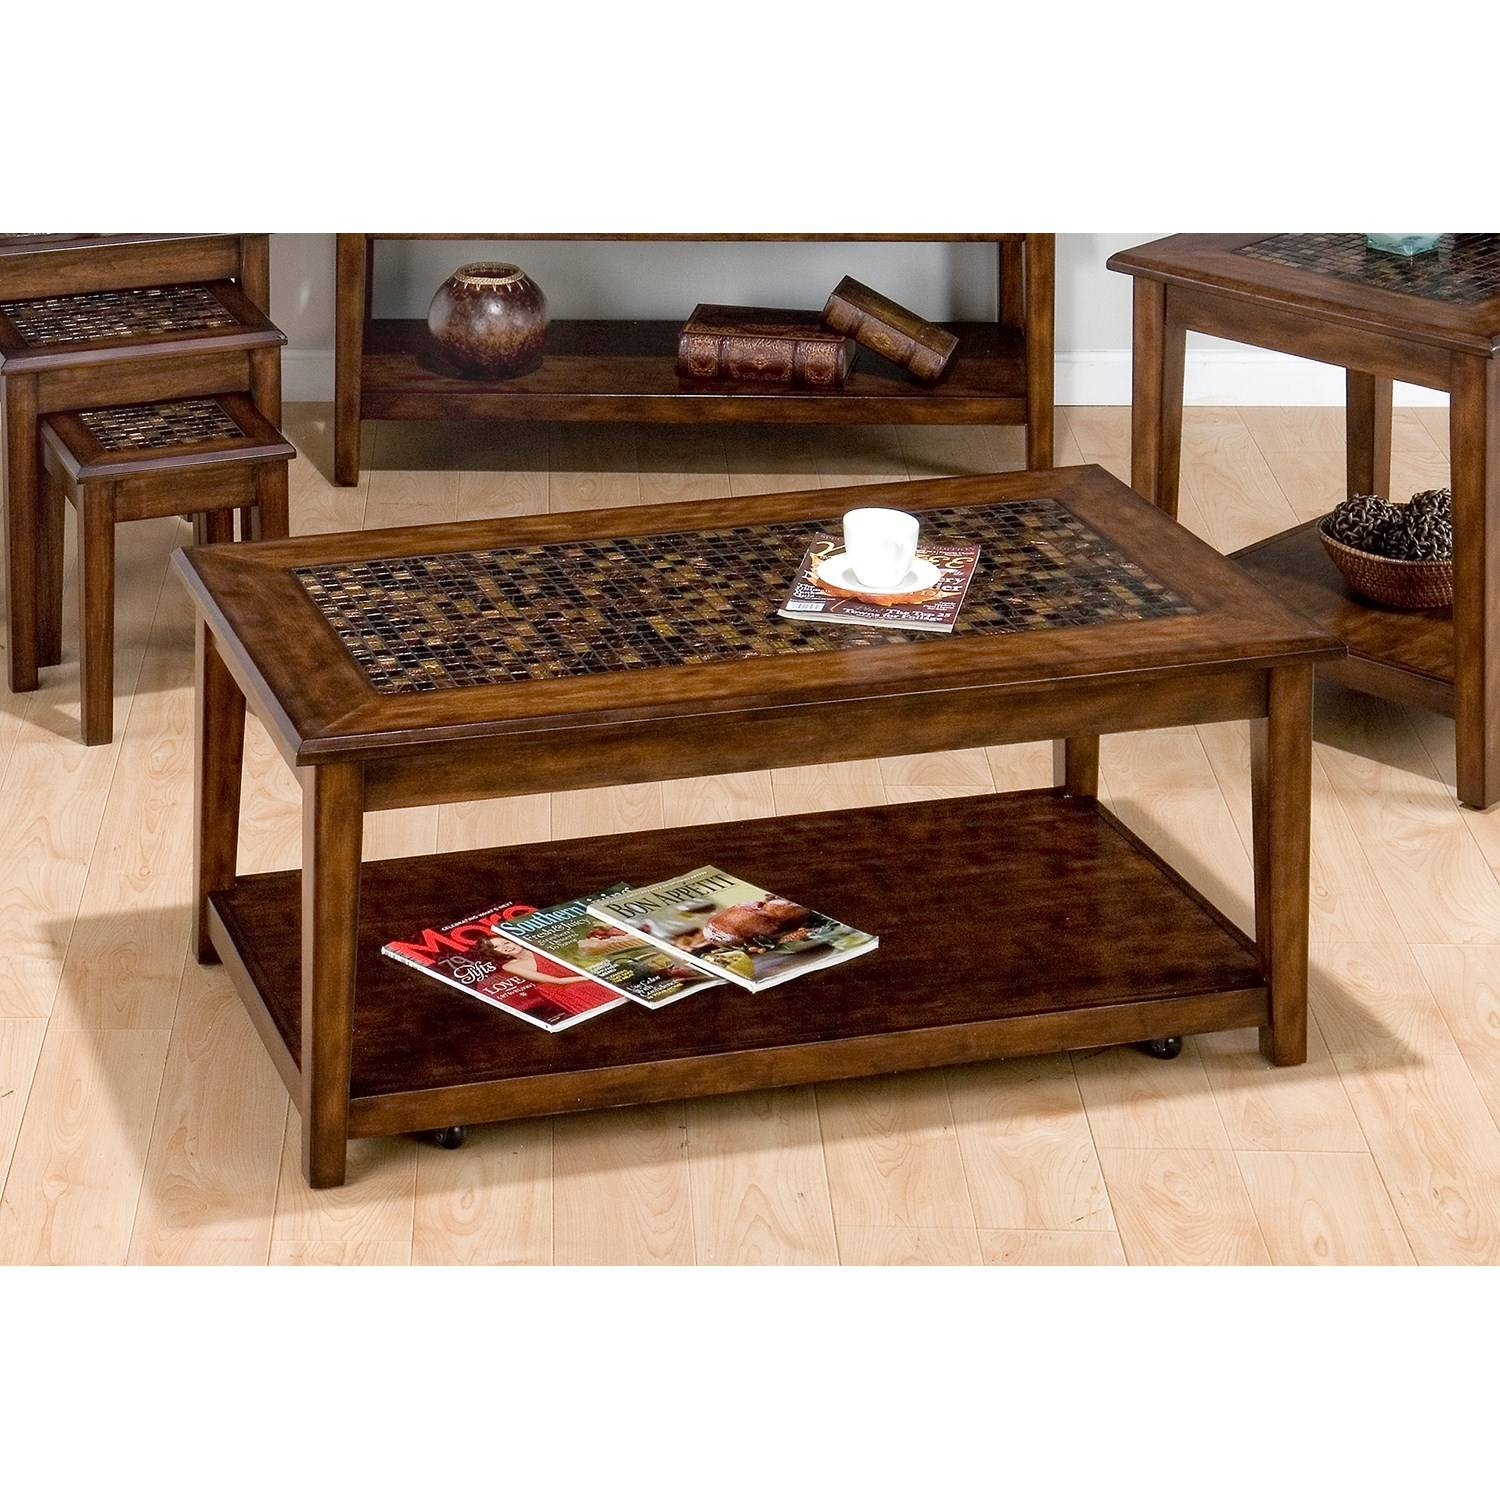 Jofran Baroque Mosaic Tile Top Coffee Table – 698 1 | The Simple Inside Baroque Coffee Tables (View 5 of 11)